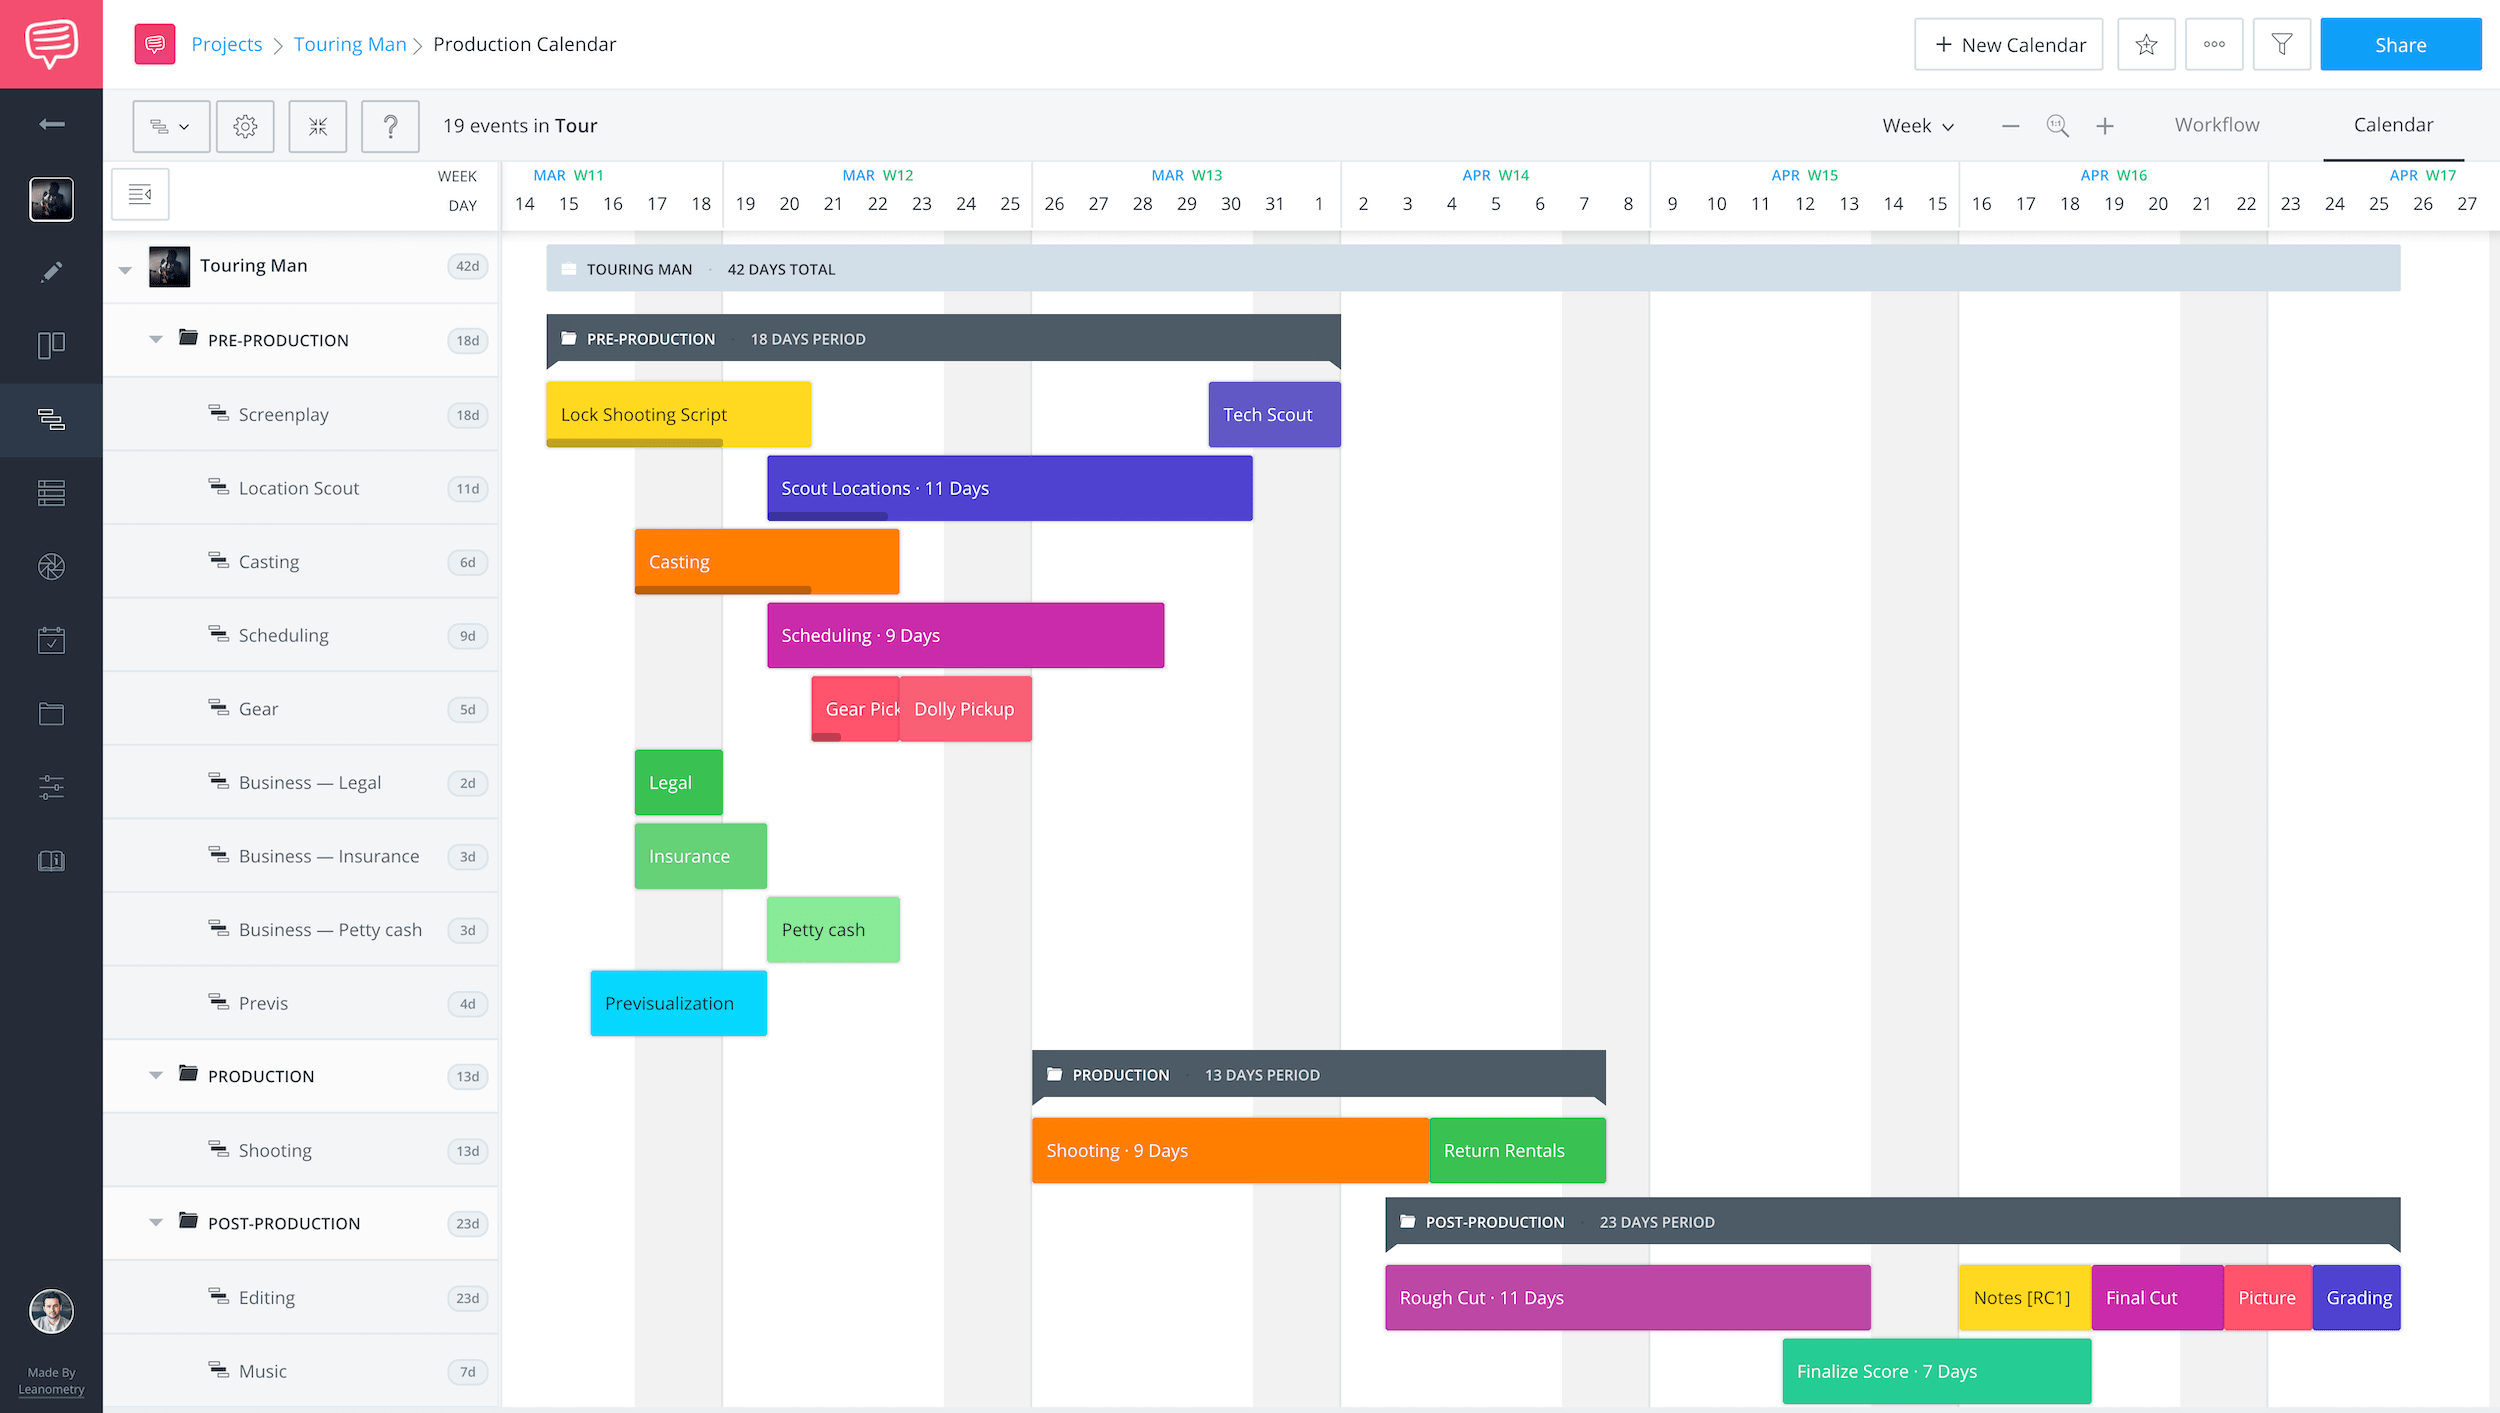 Production Calendar - Project Management - StudioBinder